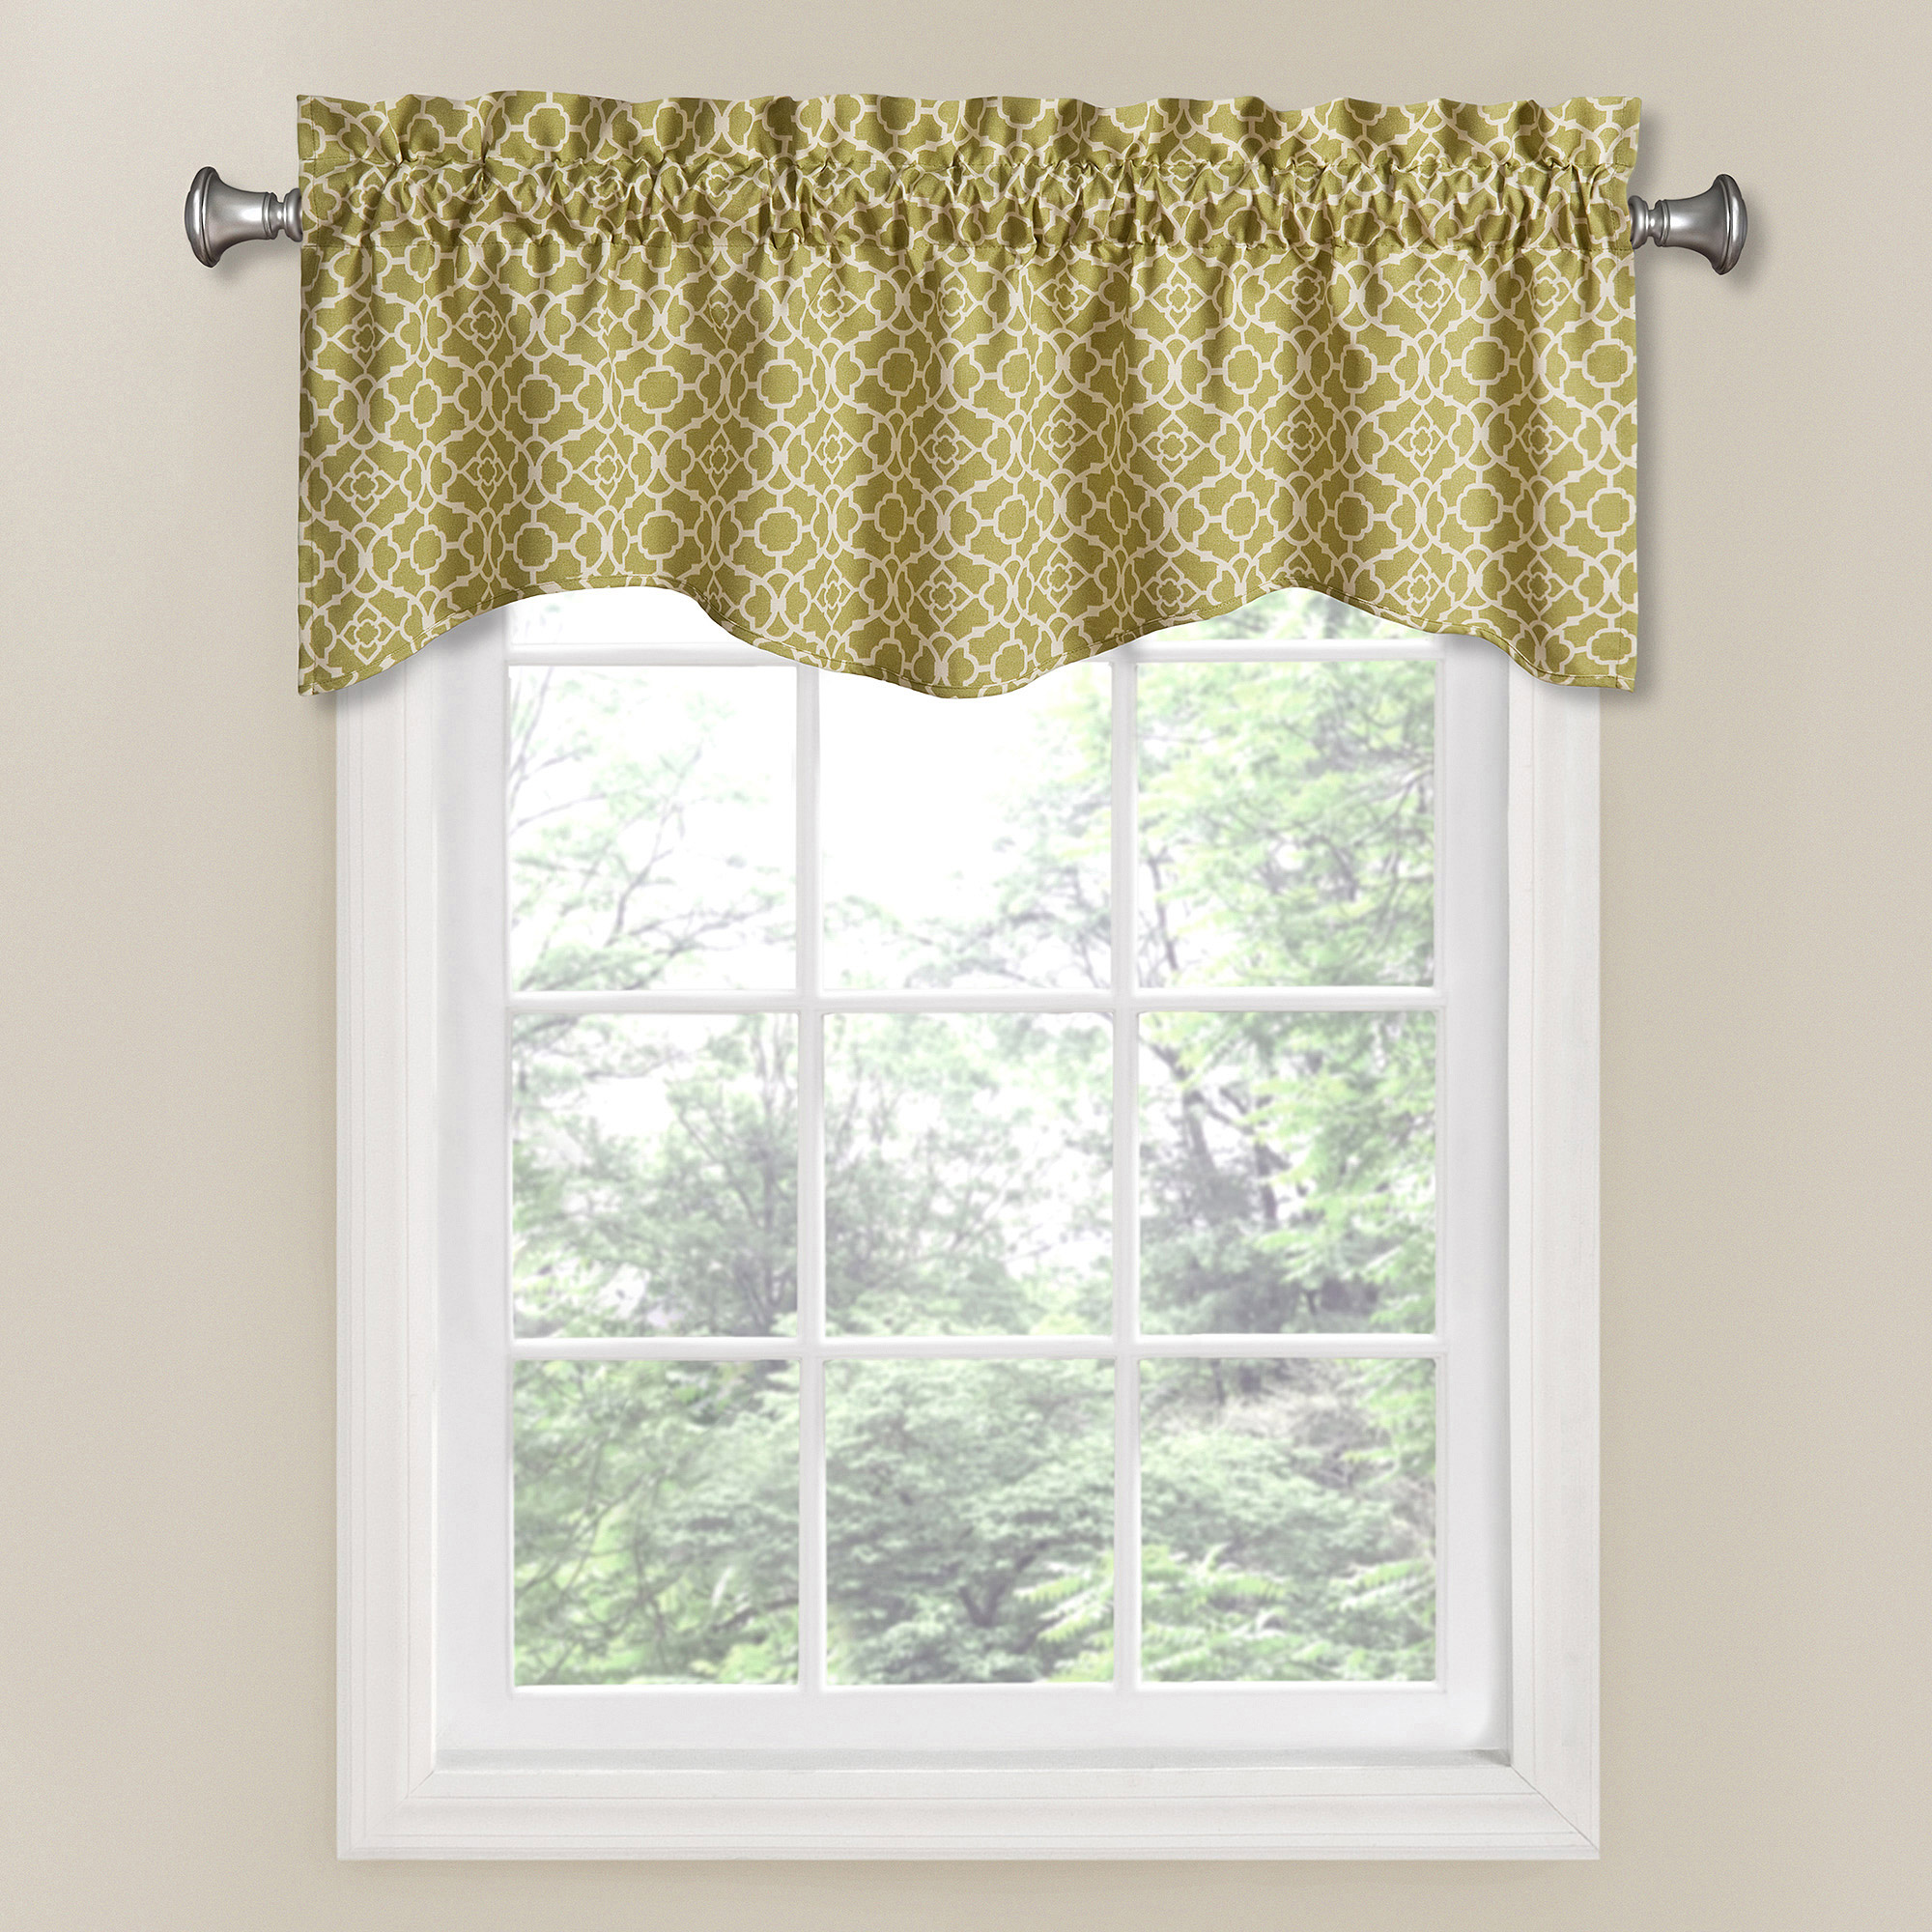 Waverly Lovely Lattice Window Valance